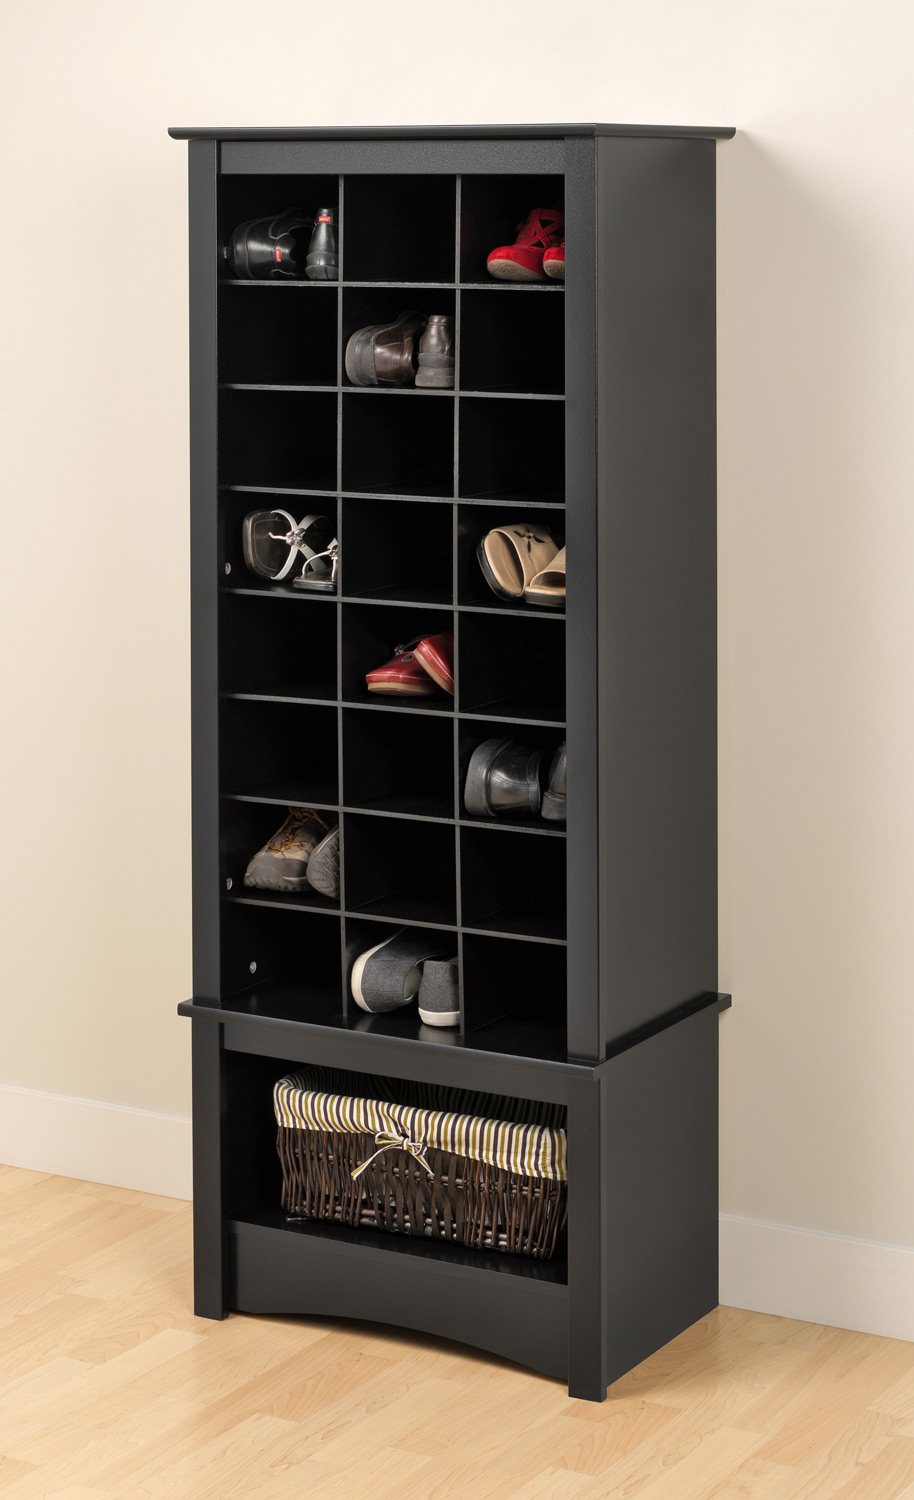 Prepac Tall Shoe Cubbie Cabinet - Black BUSR-0008-1 at ...